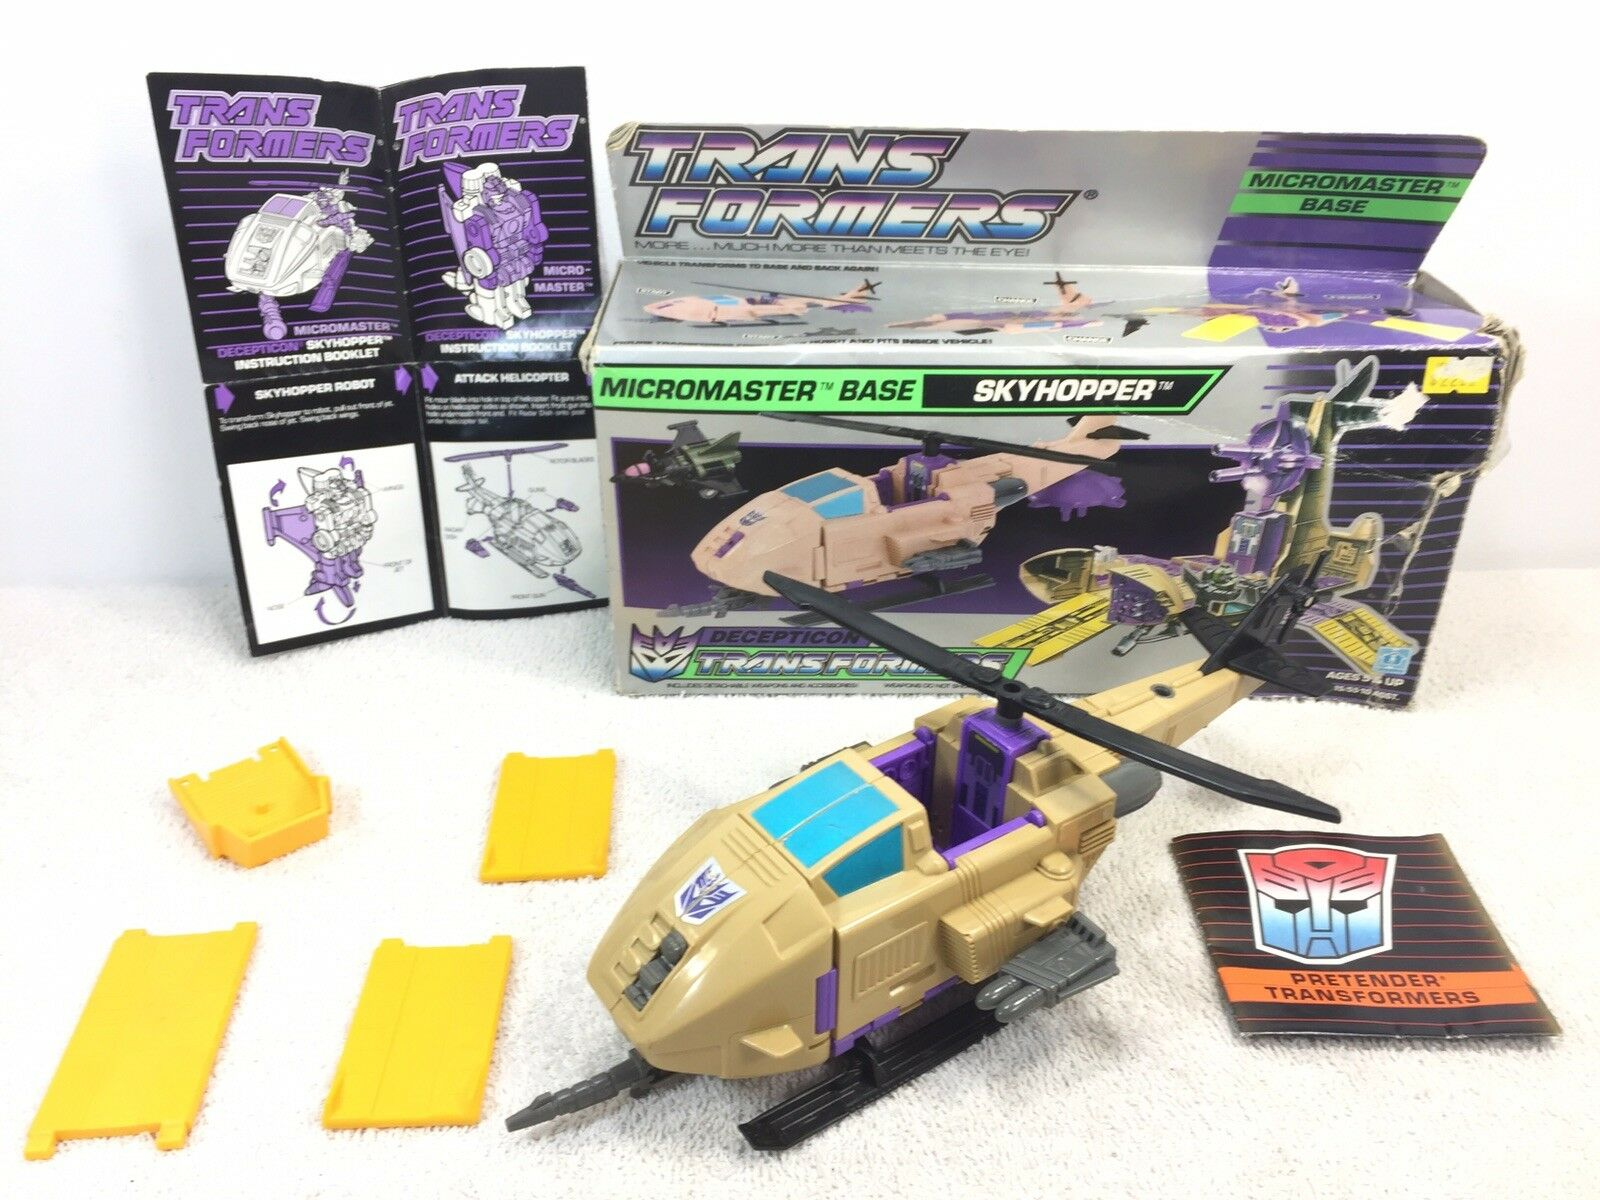 1989 Hasbro Transformers G1 Micromaster cielohopper scatola Instructions not completare